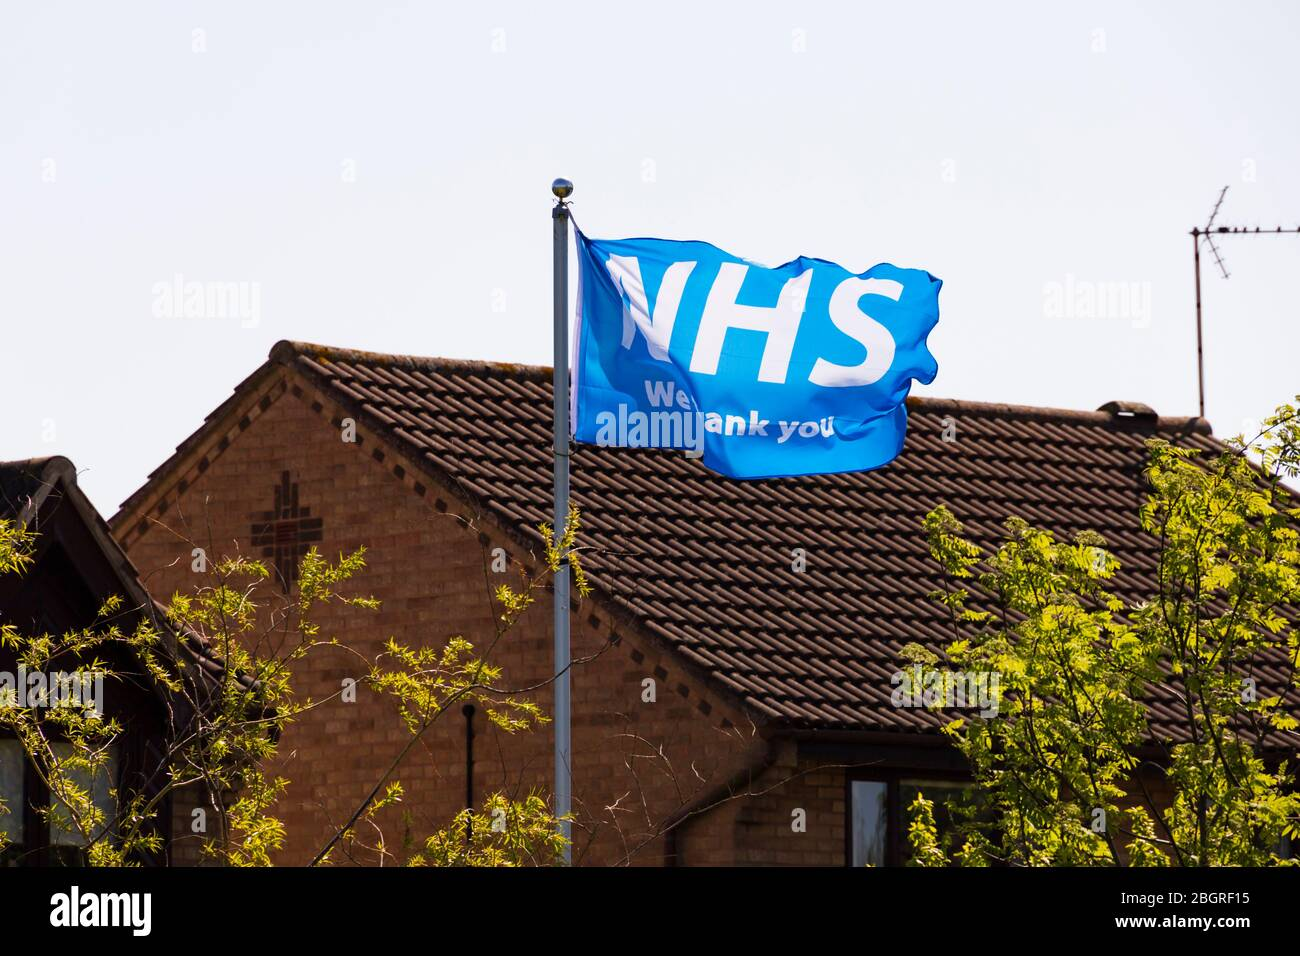 Thank you NHS flag flying at a private house during the Corona Virus, Covid-19. pandemic. Grantham, Lincolnshire, England. April 2020 Stock Photo